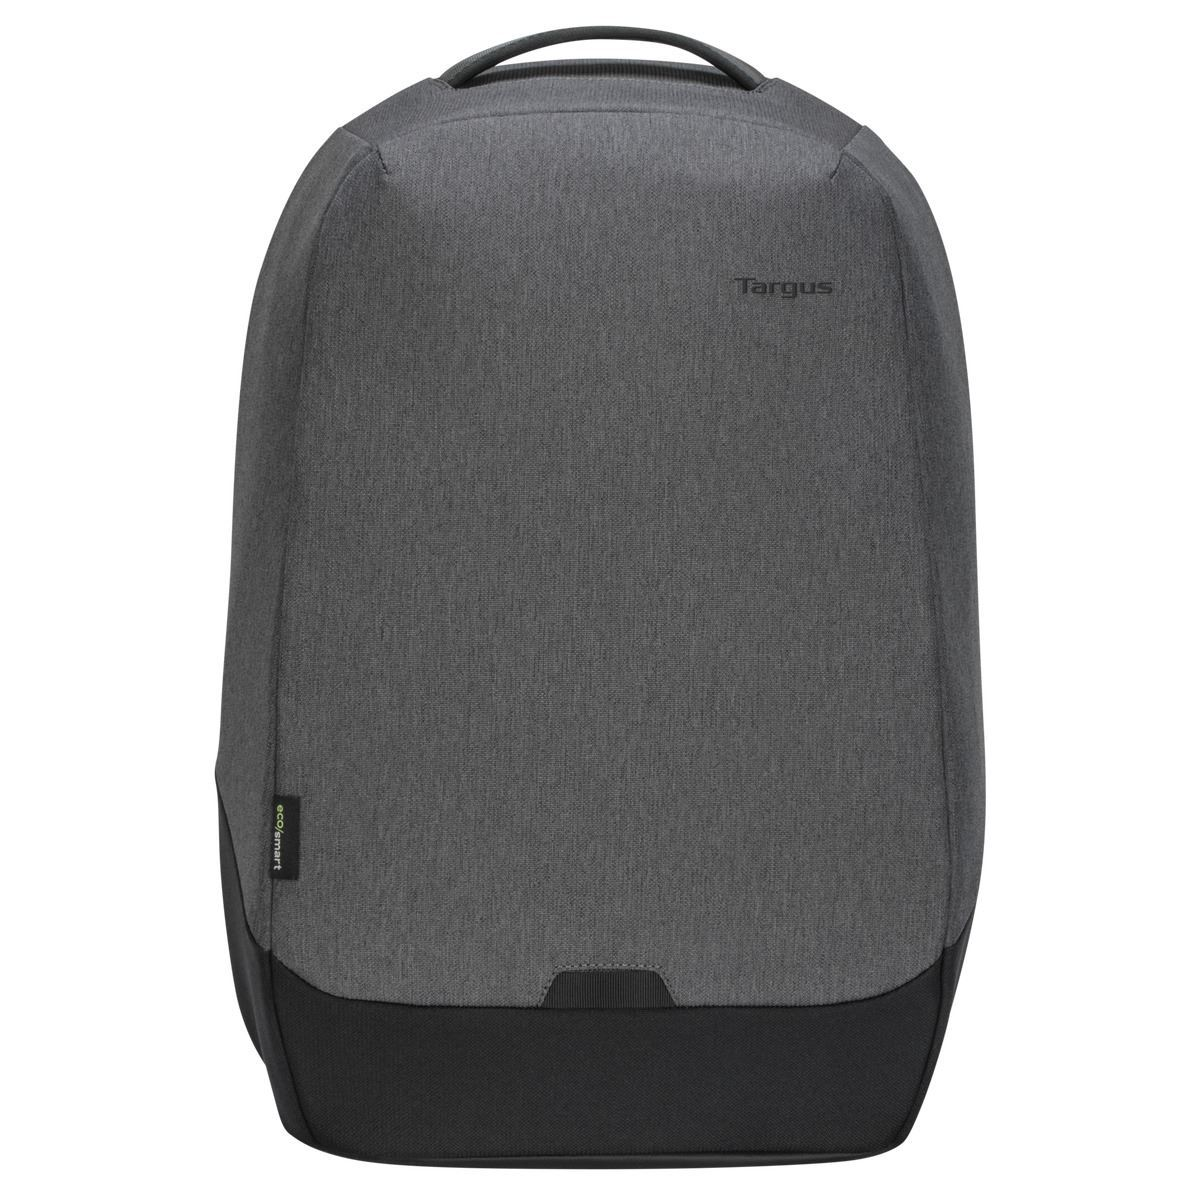 "Cypress 15.6"" Security Backpack with EcoSmart"